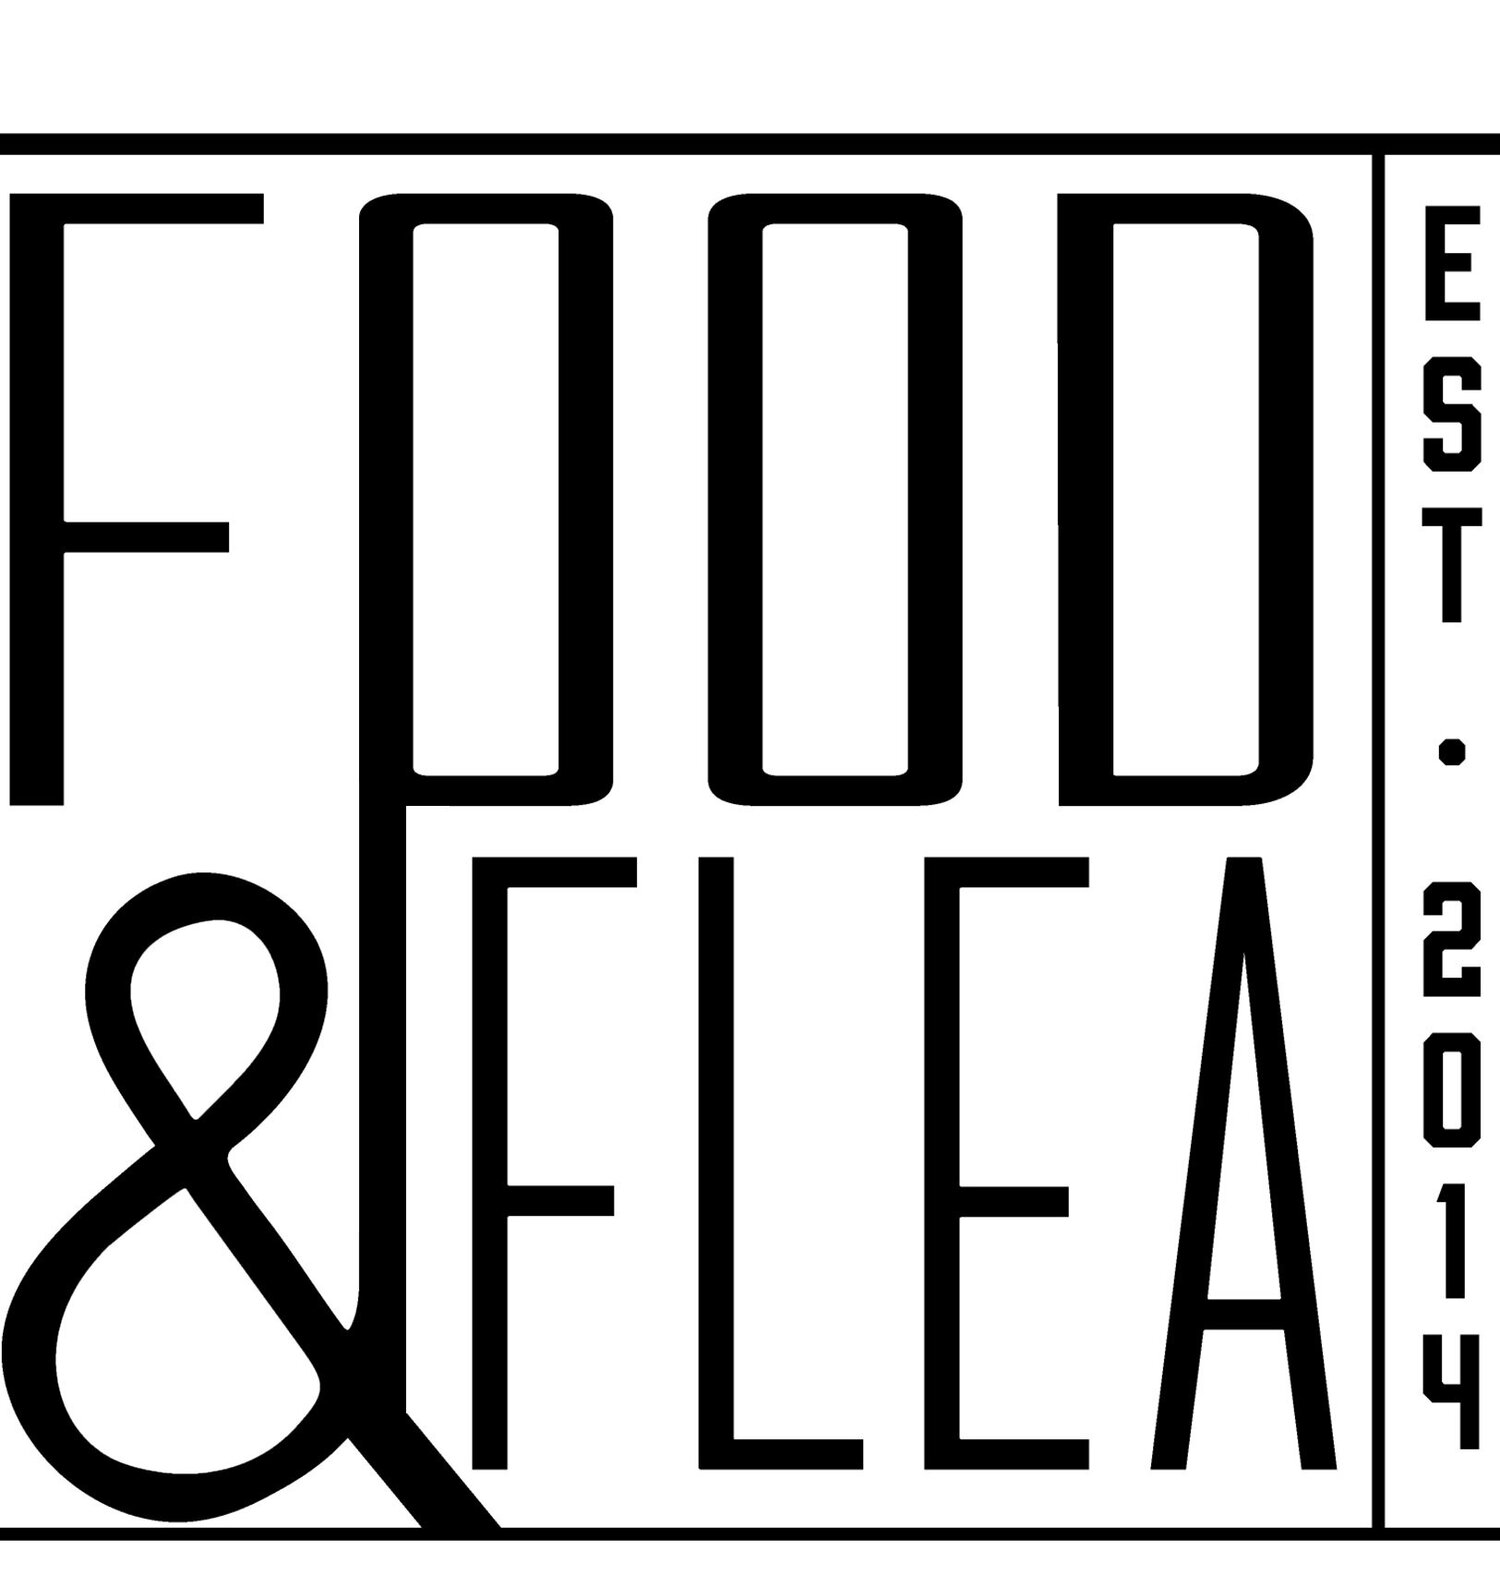 2019 Cary Spring Food and Flea Market